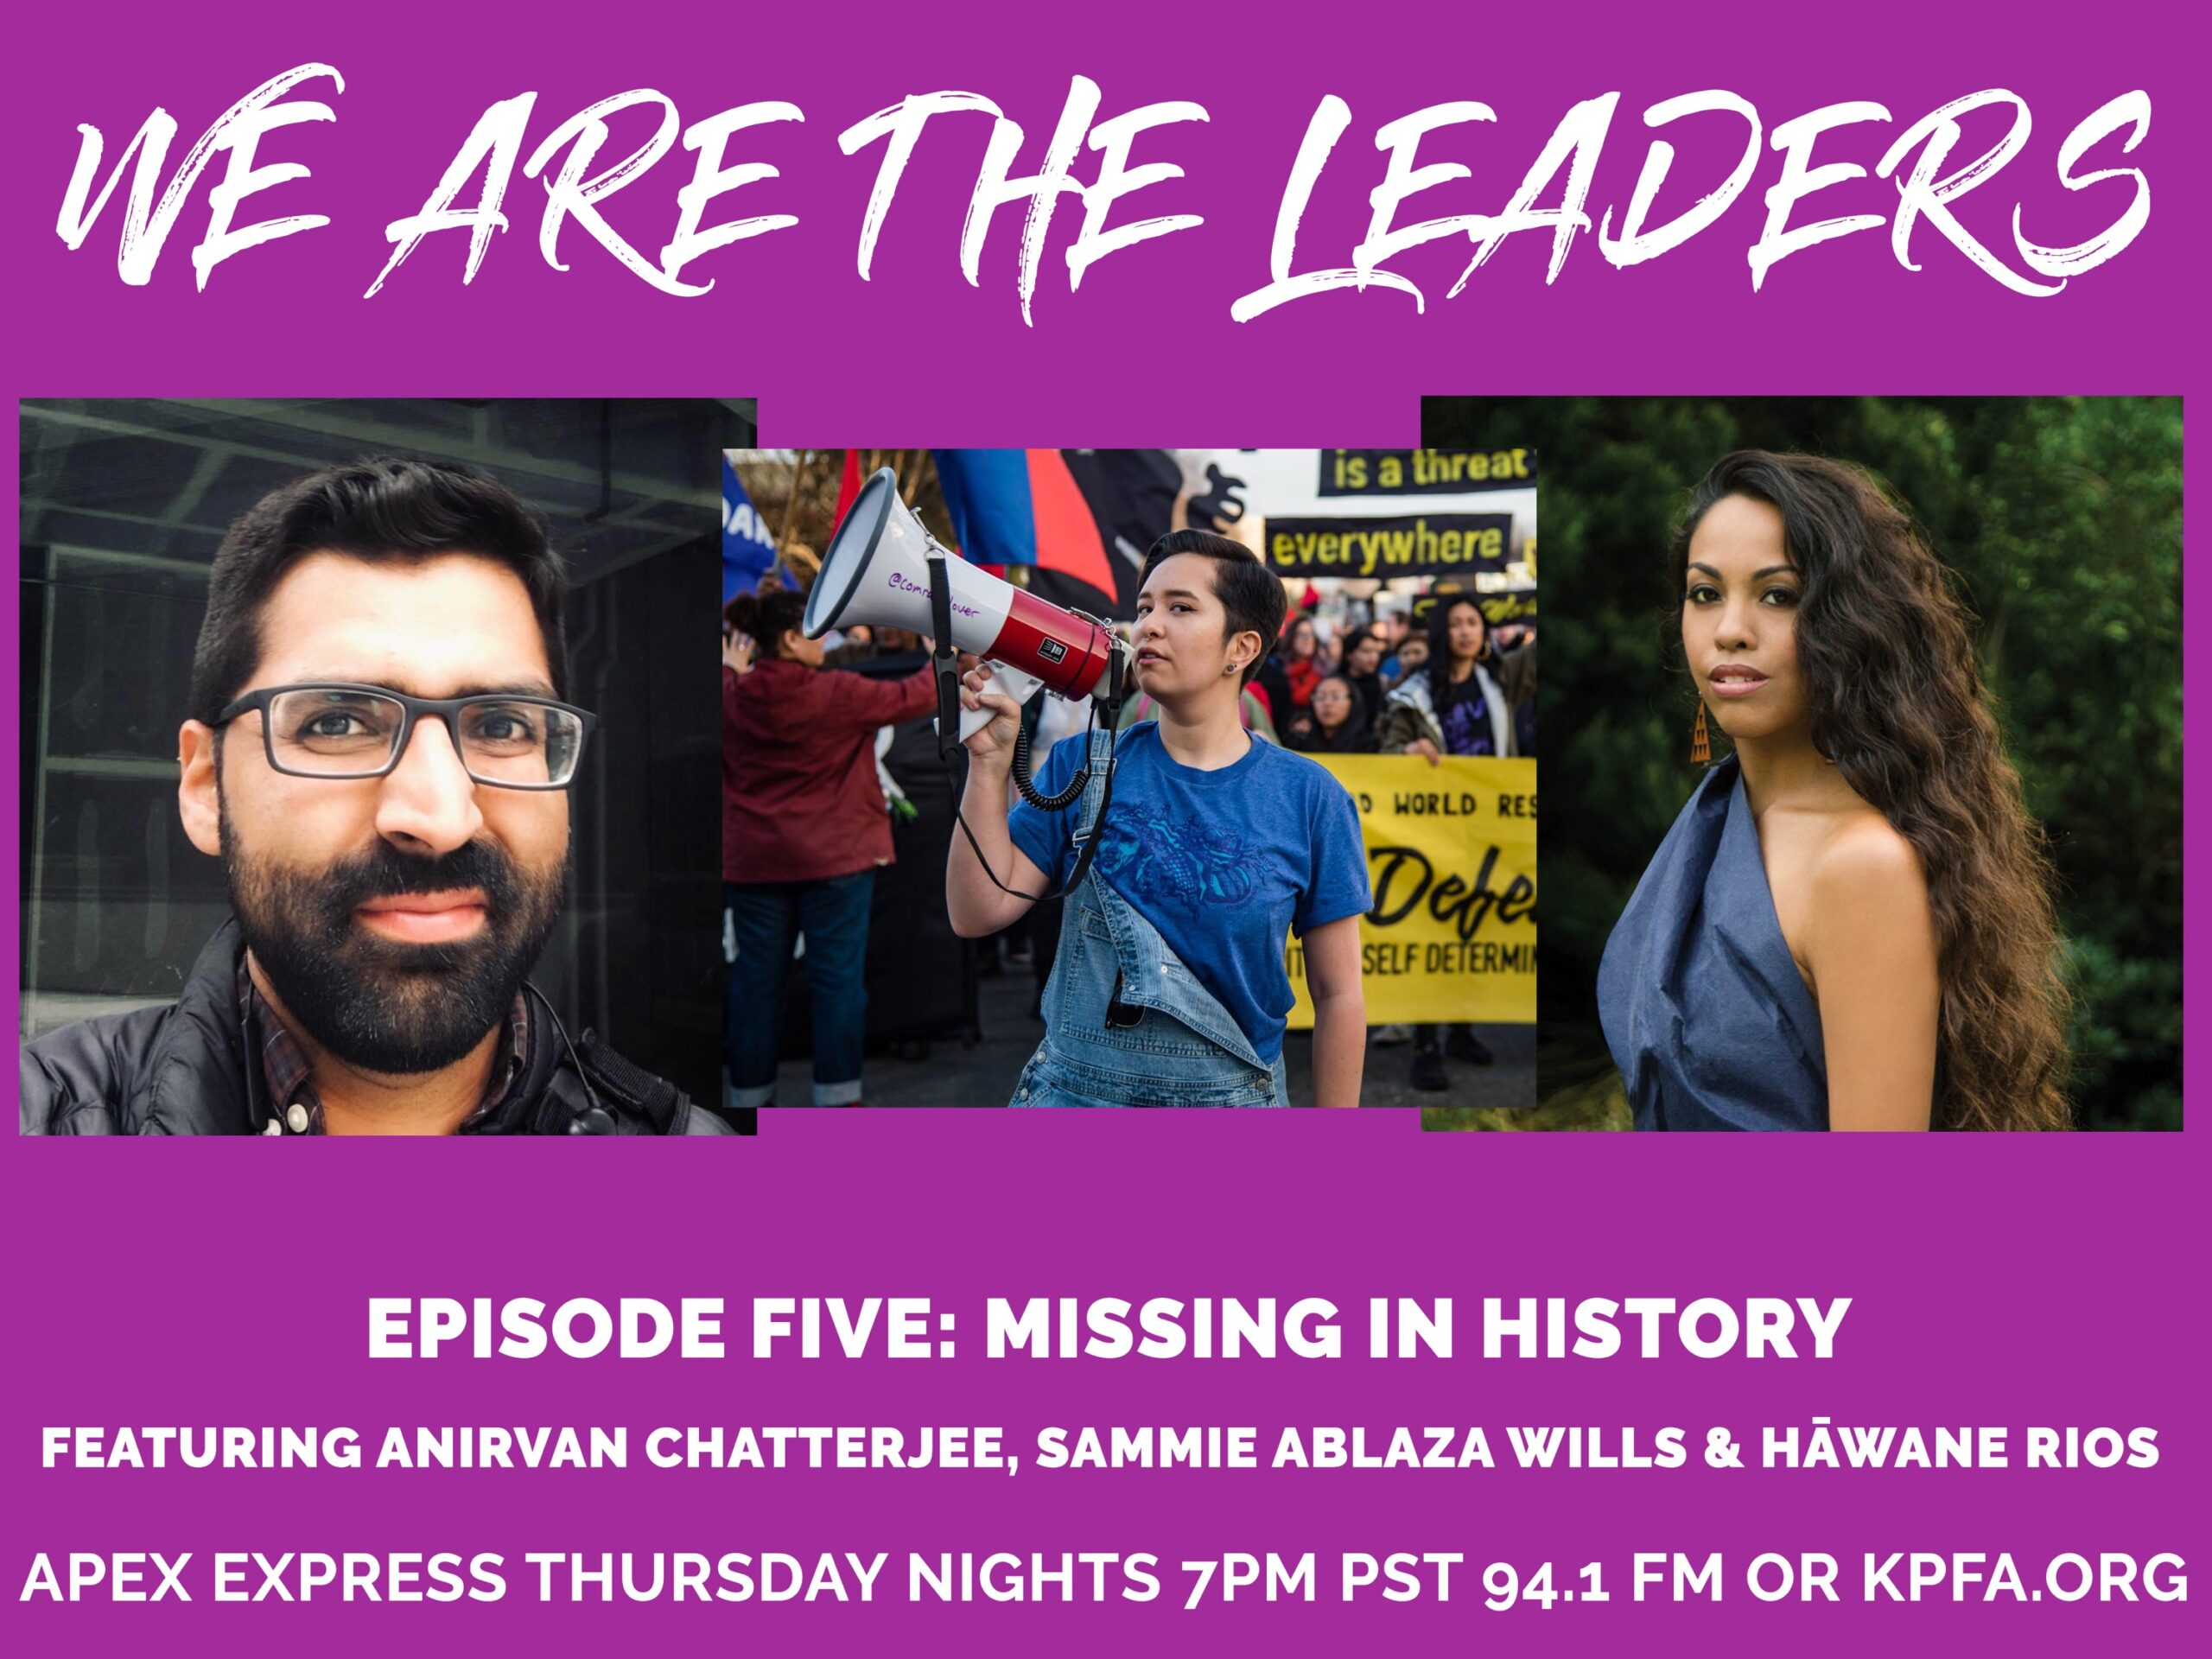 kpfa.org: APEX Express – October 29, 2020- We are the Leaders 5 – Missing in History